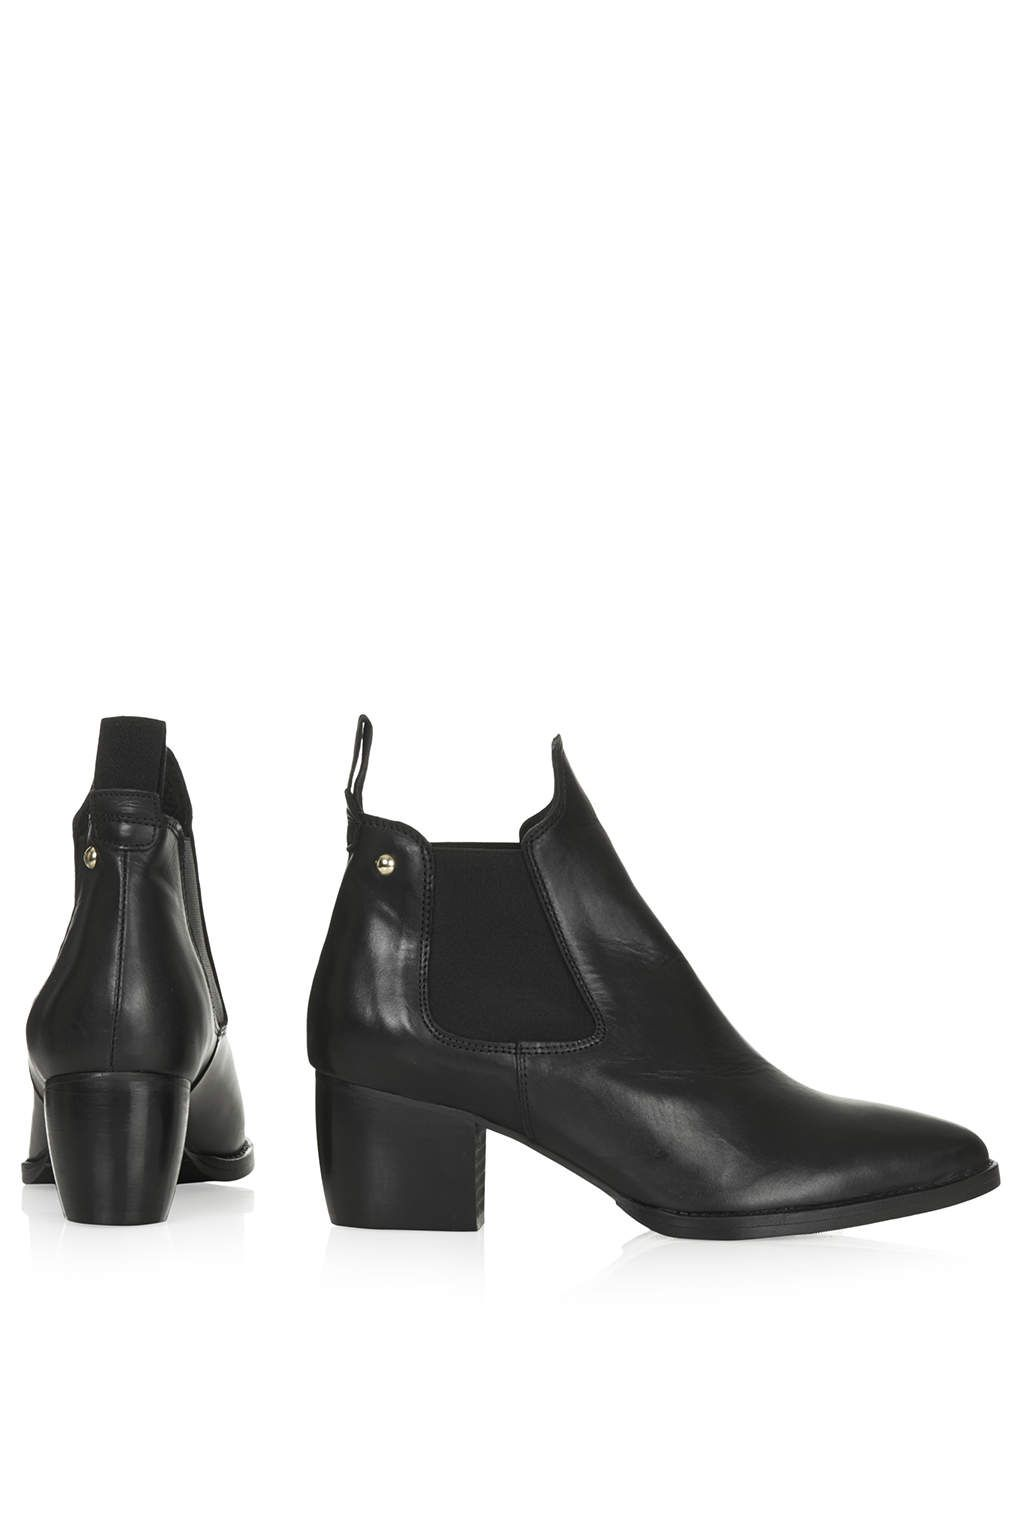 MARGOT Leather Boots - Boots - Shoes